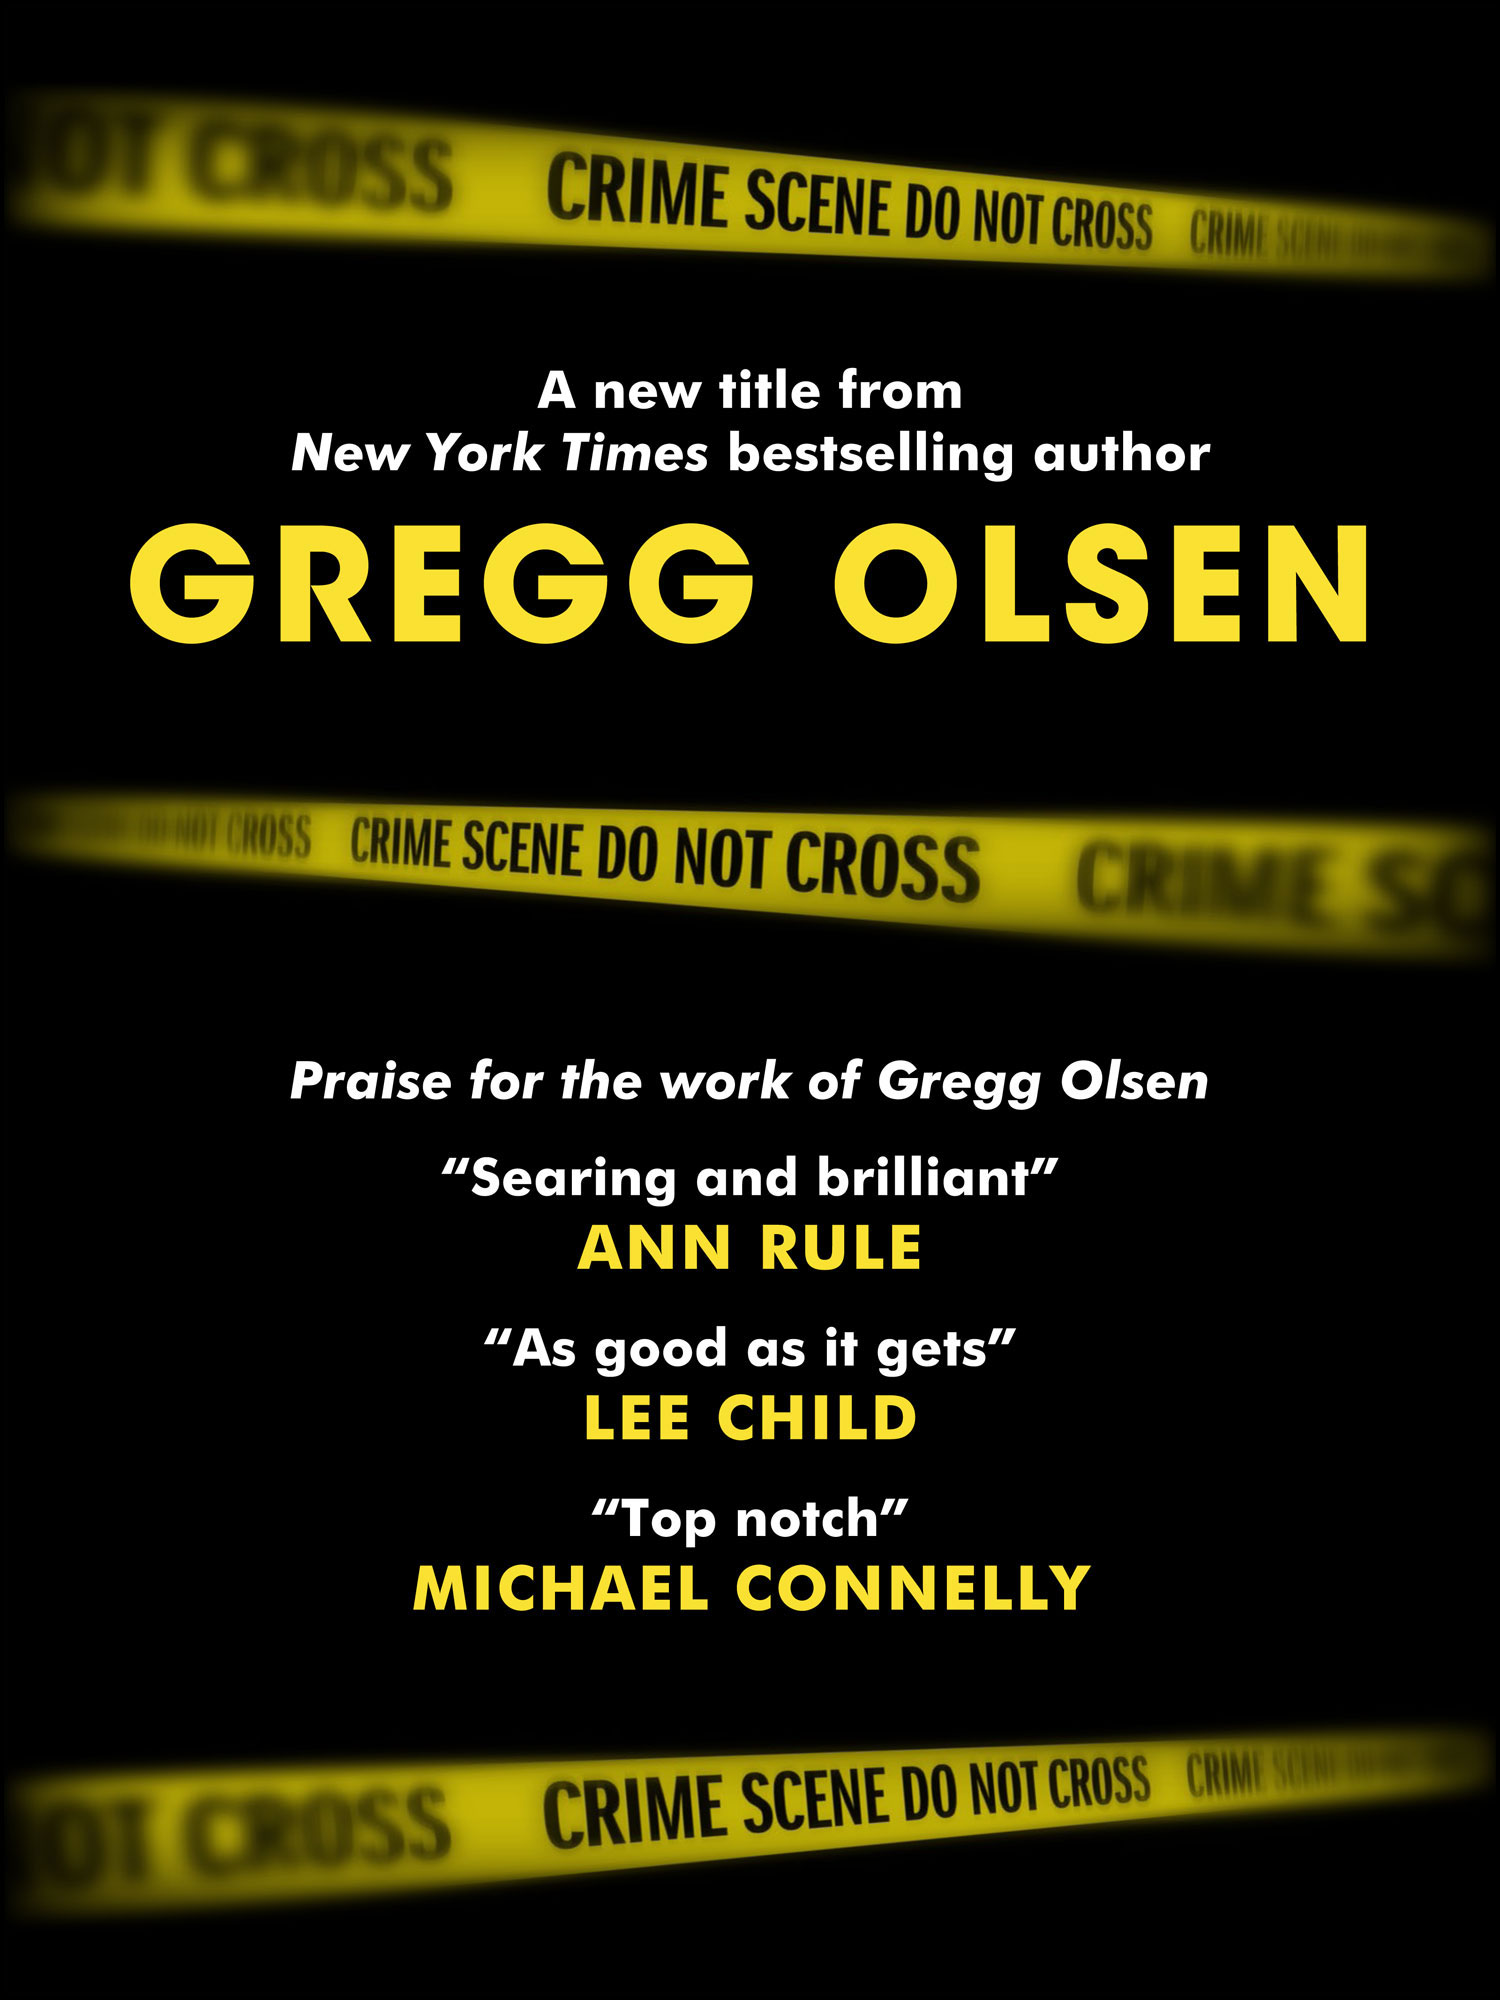 A new title from New York Times bestselling author Gregg Olsen